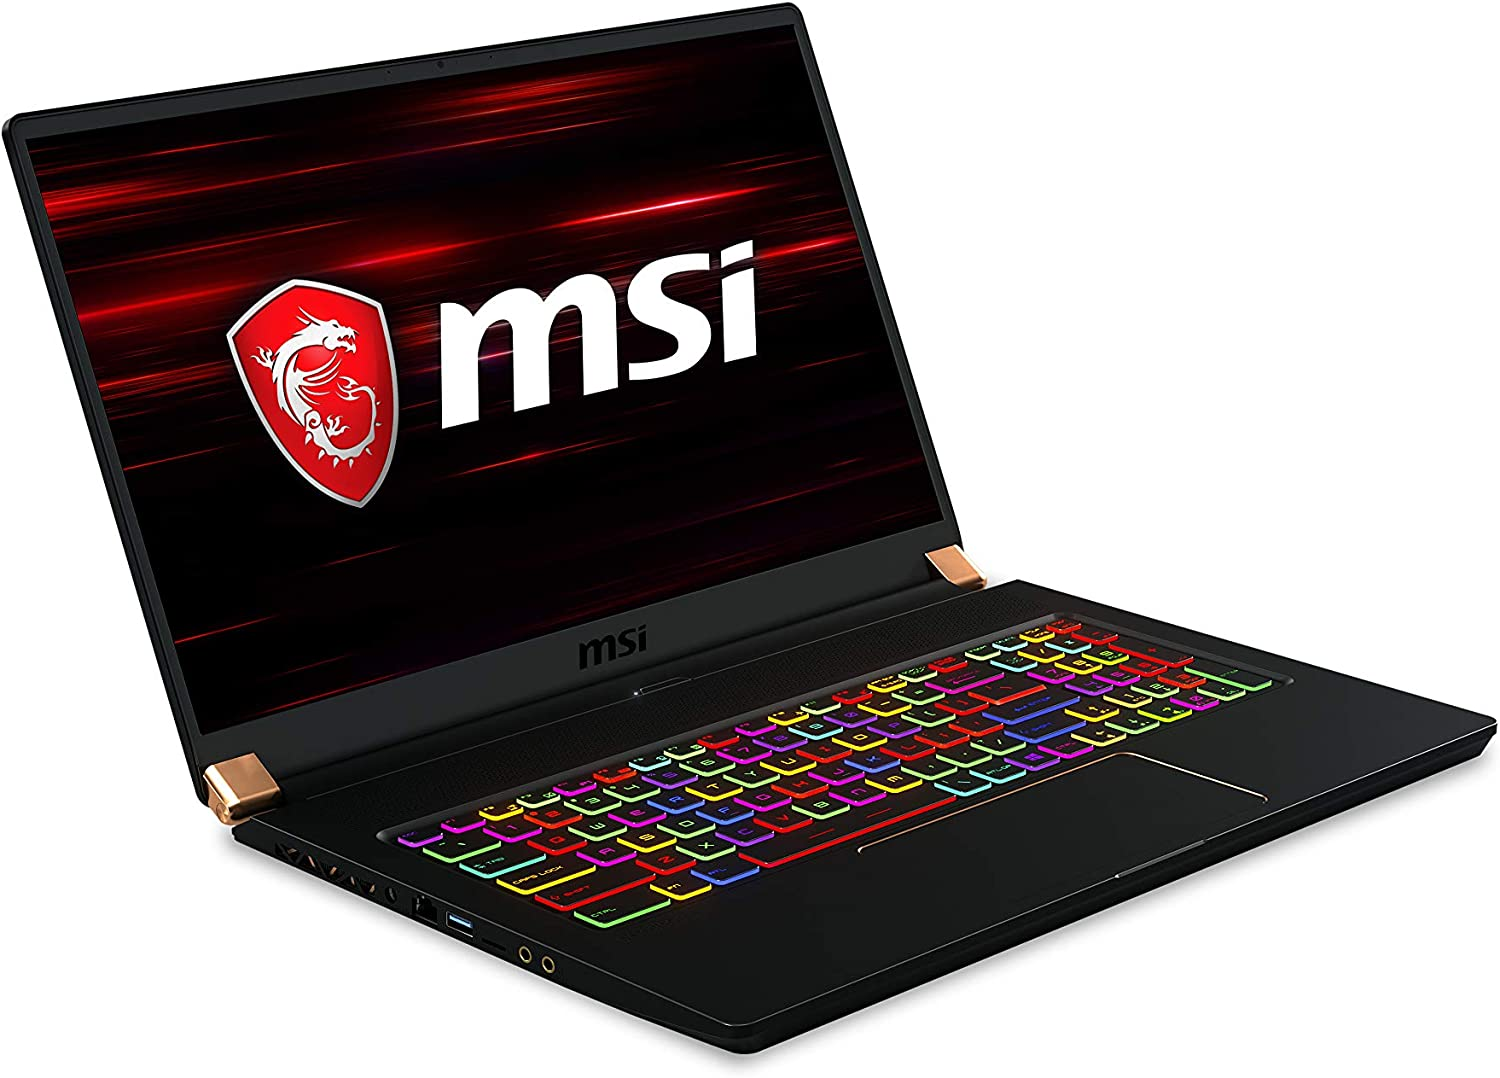 MSI GS75 Stealth 10SFS-035 17.3